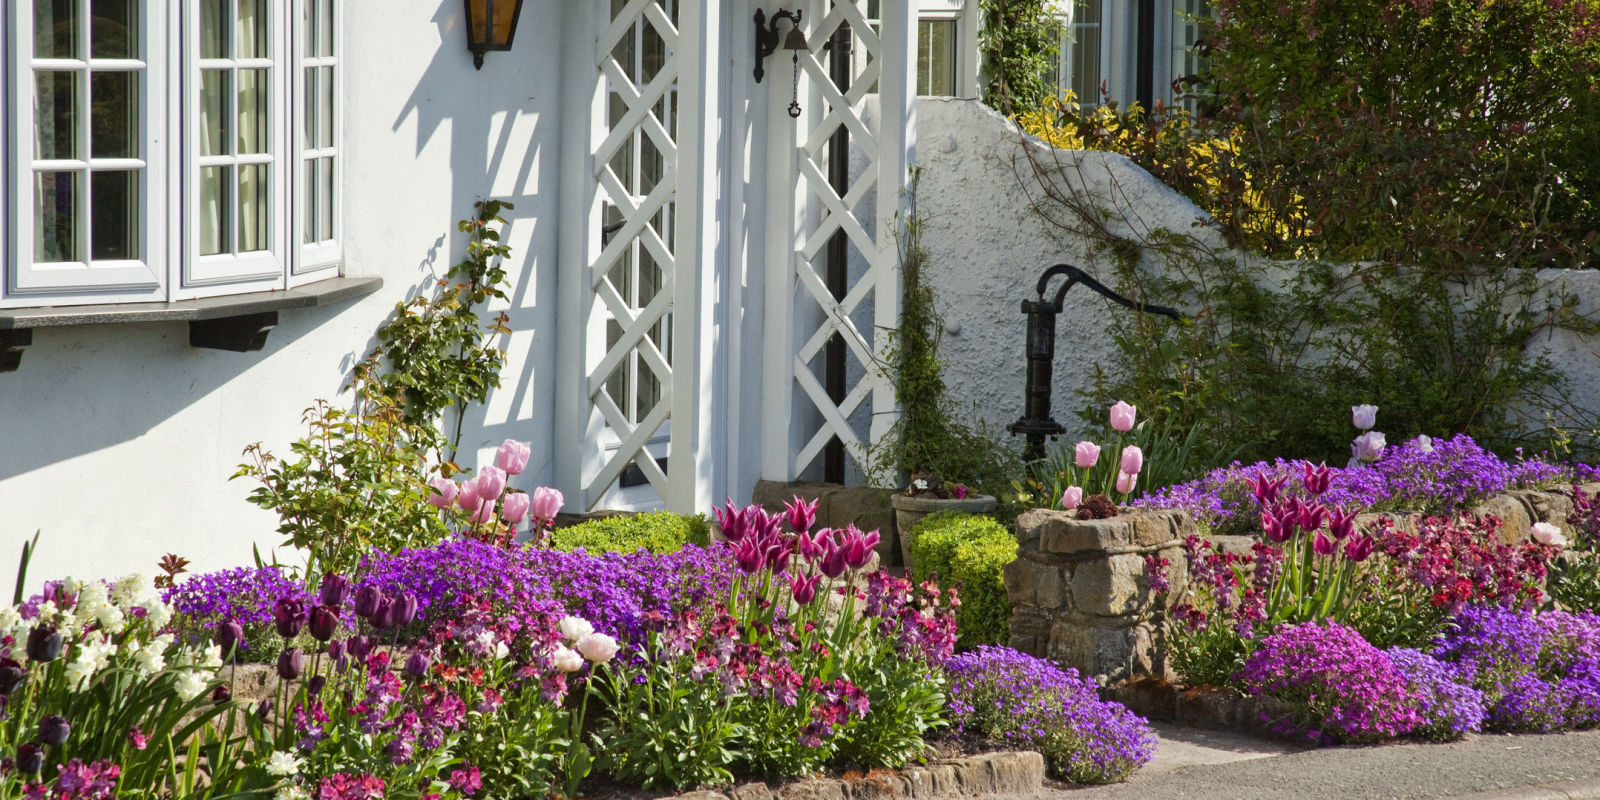 7 golden rules to give your front garden the wow factor for Front garden designs uk